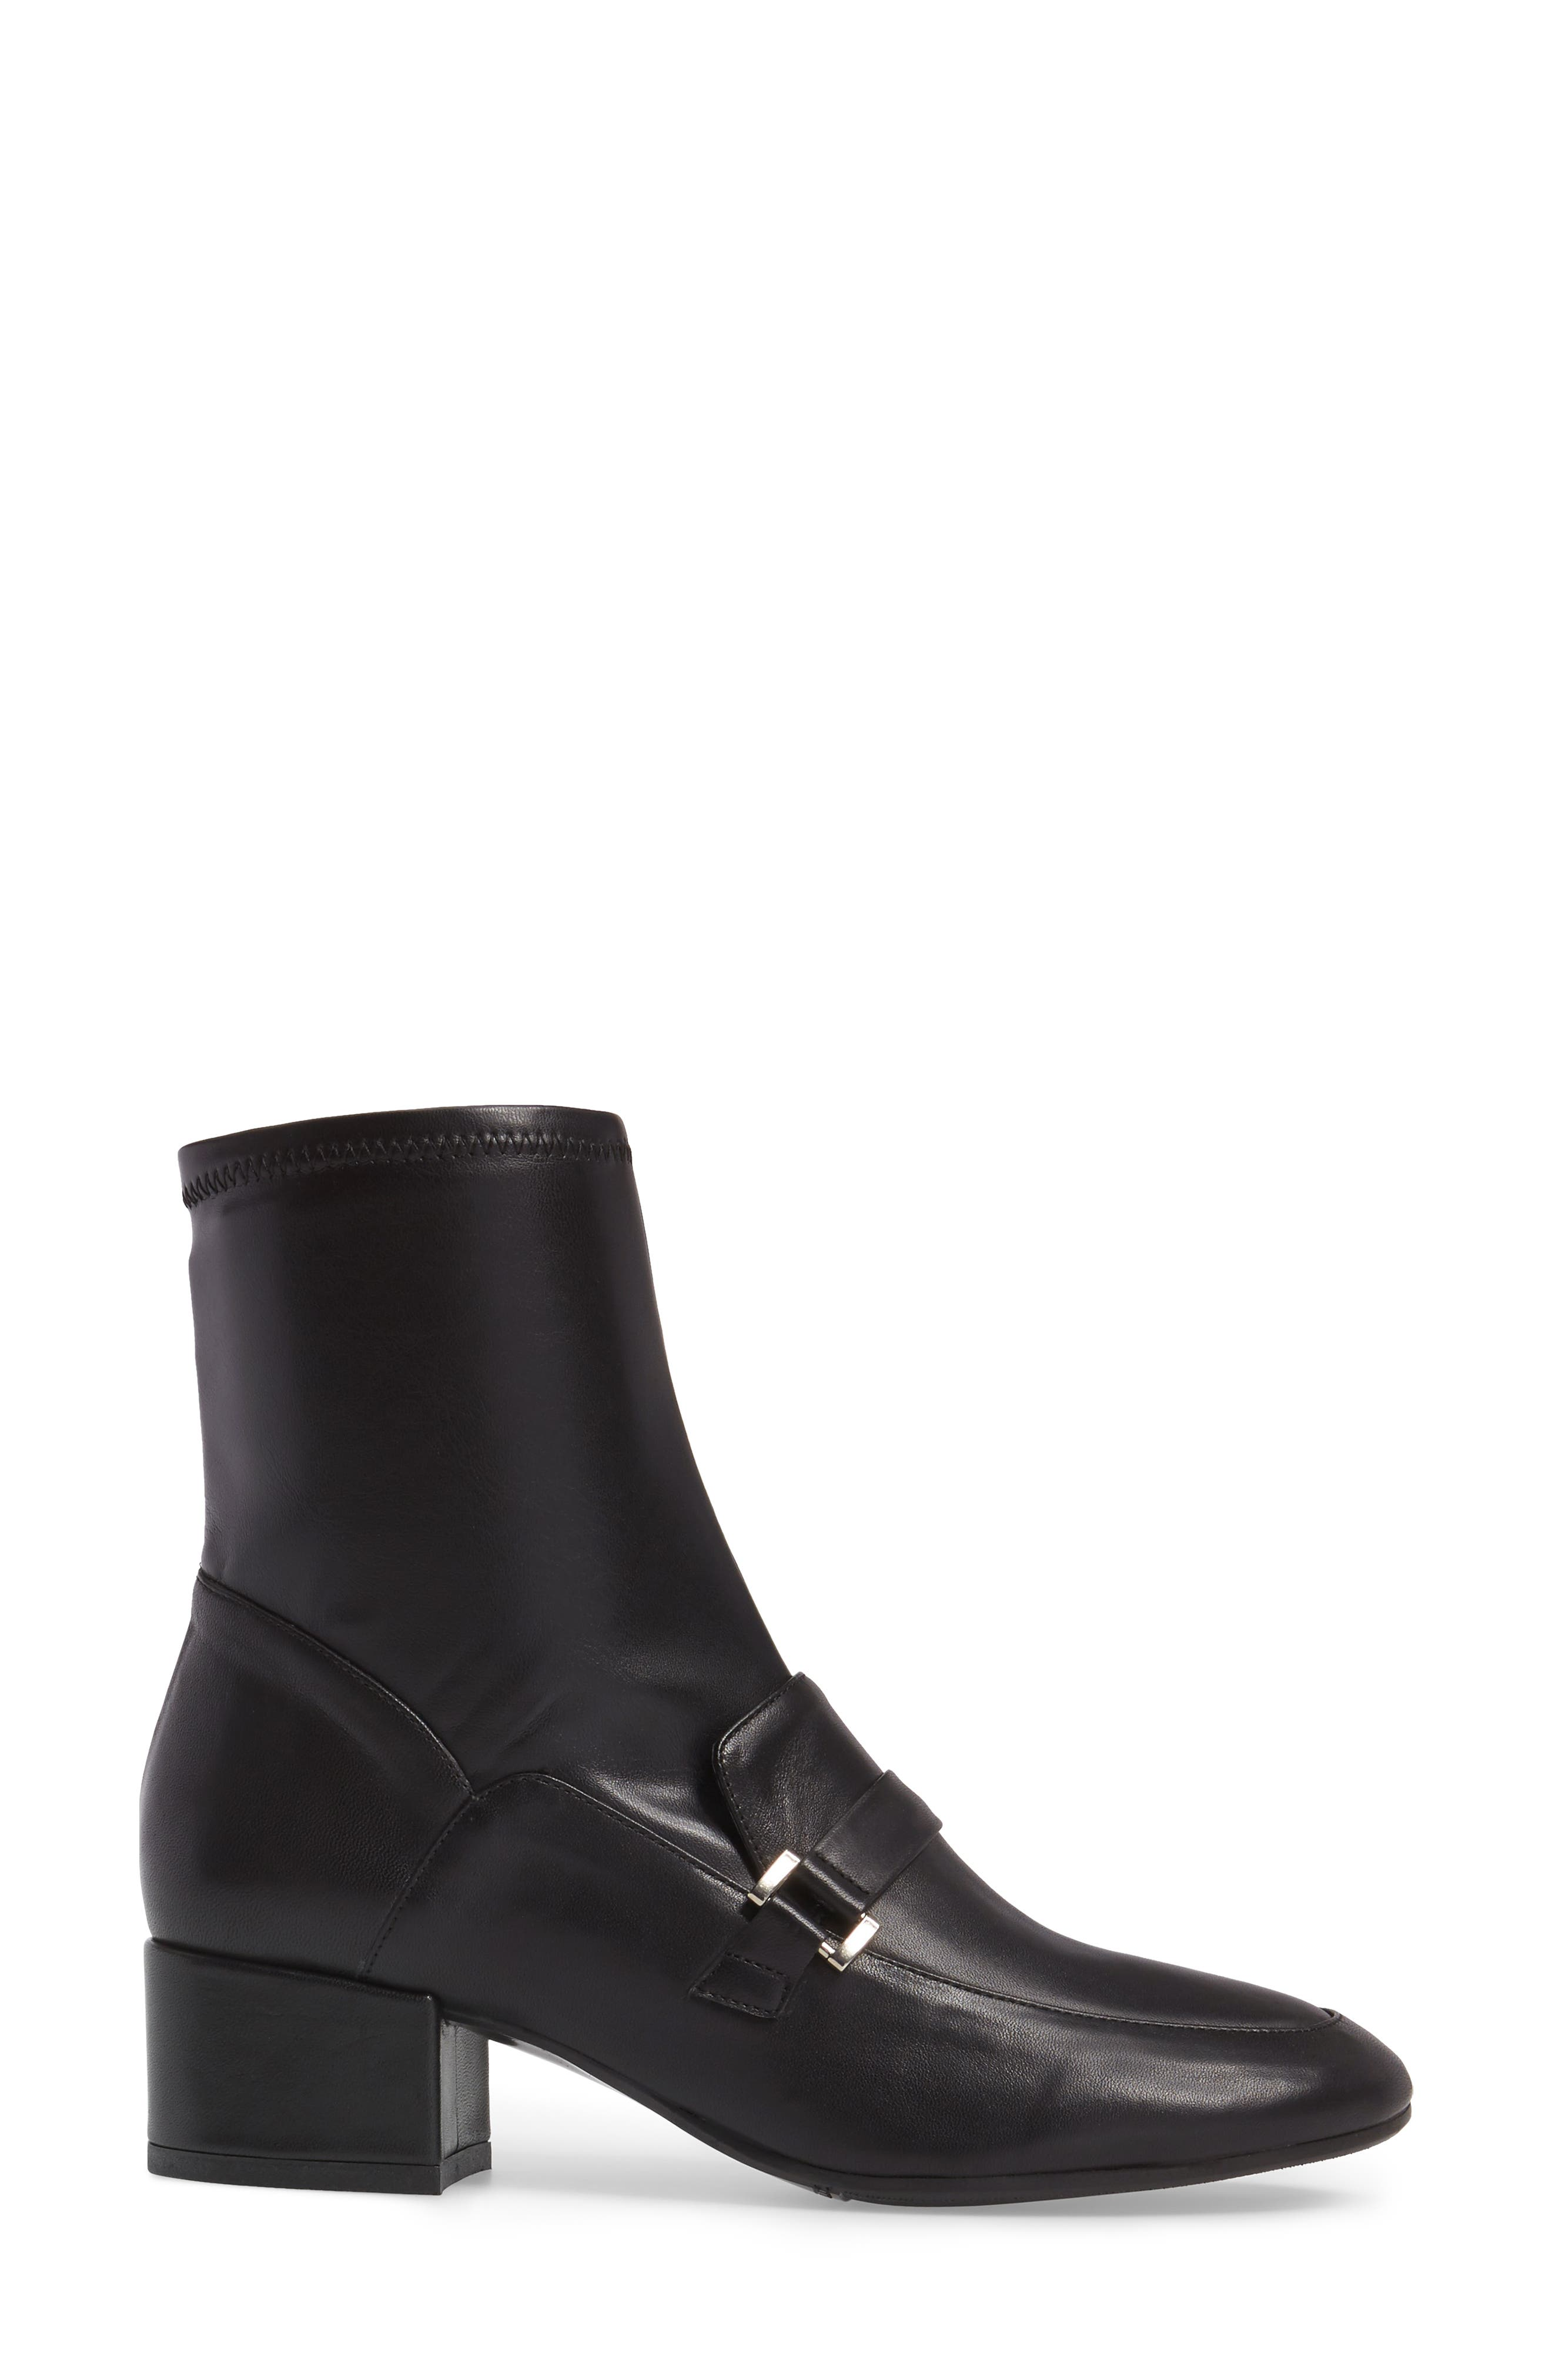 Mod Loafer Bootie,                             Alternate thumbnail 3, color,                             Black Stretch Leather